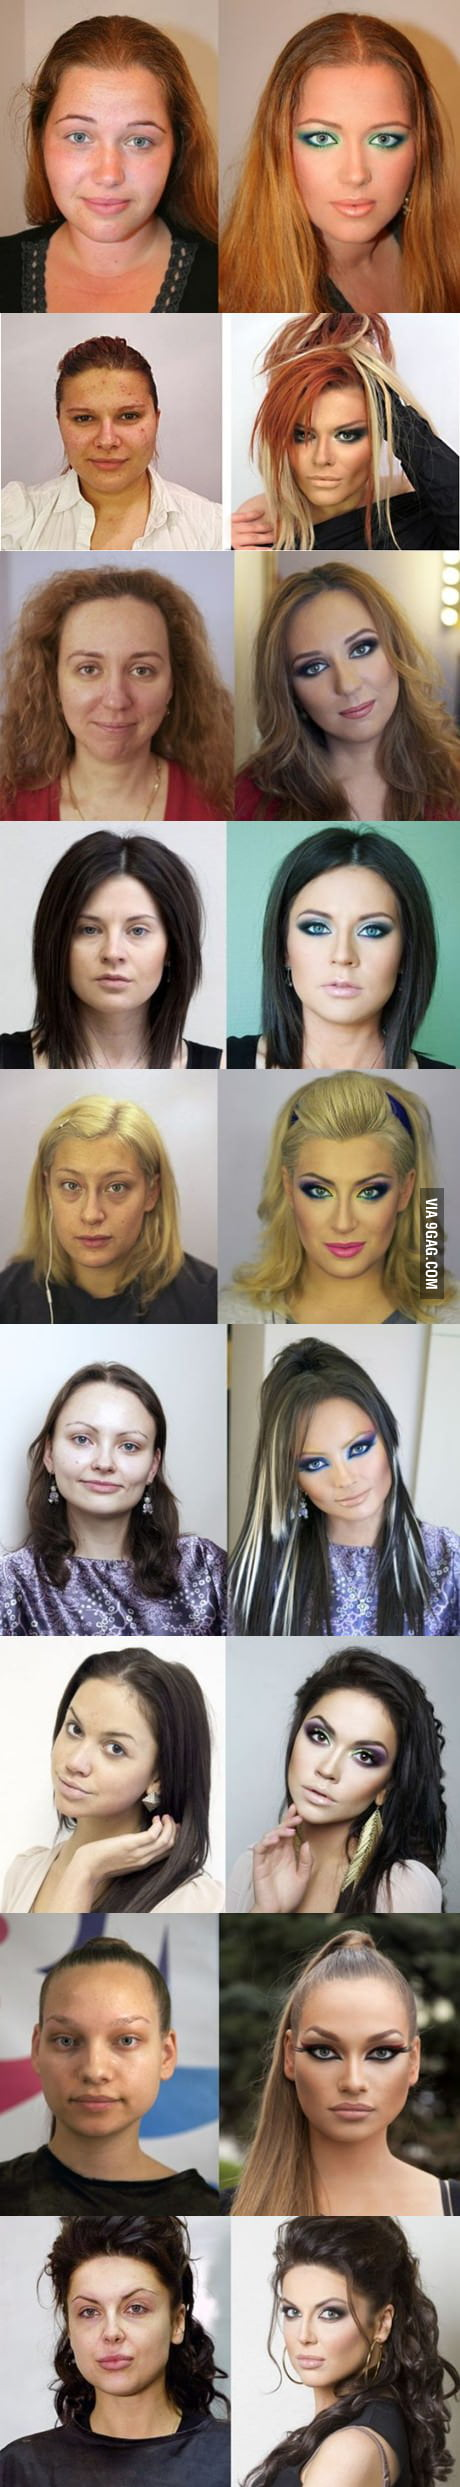 Make-up Nowdays